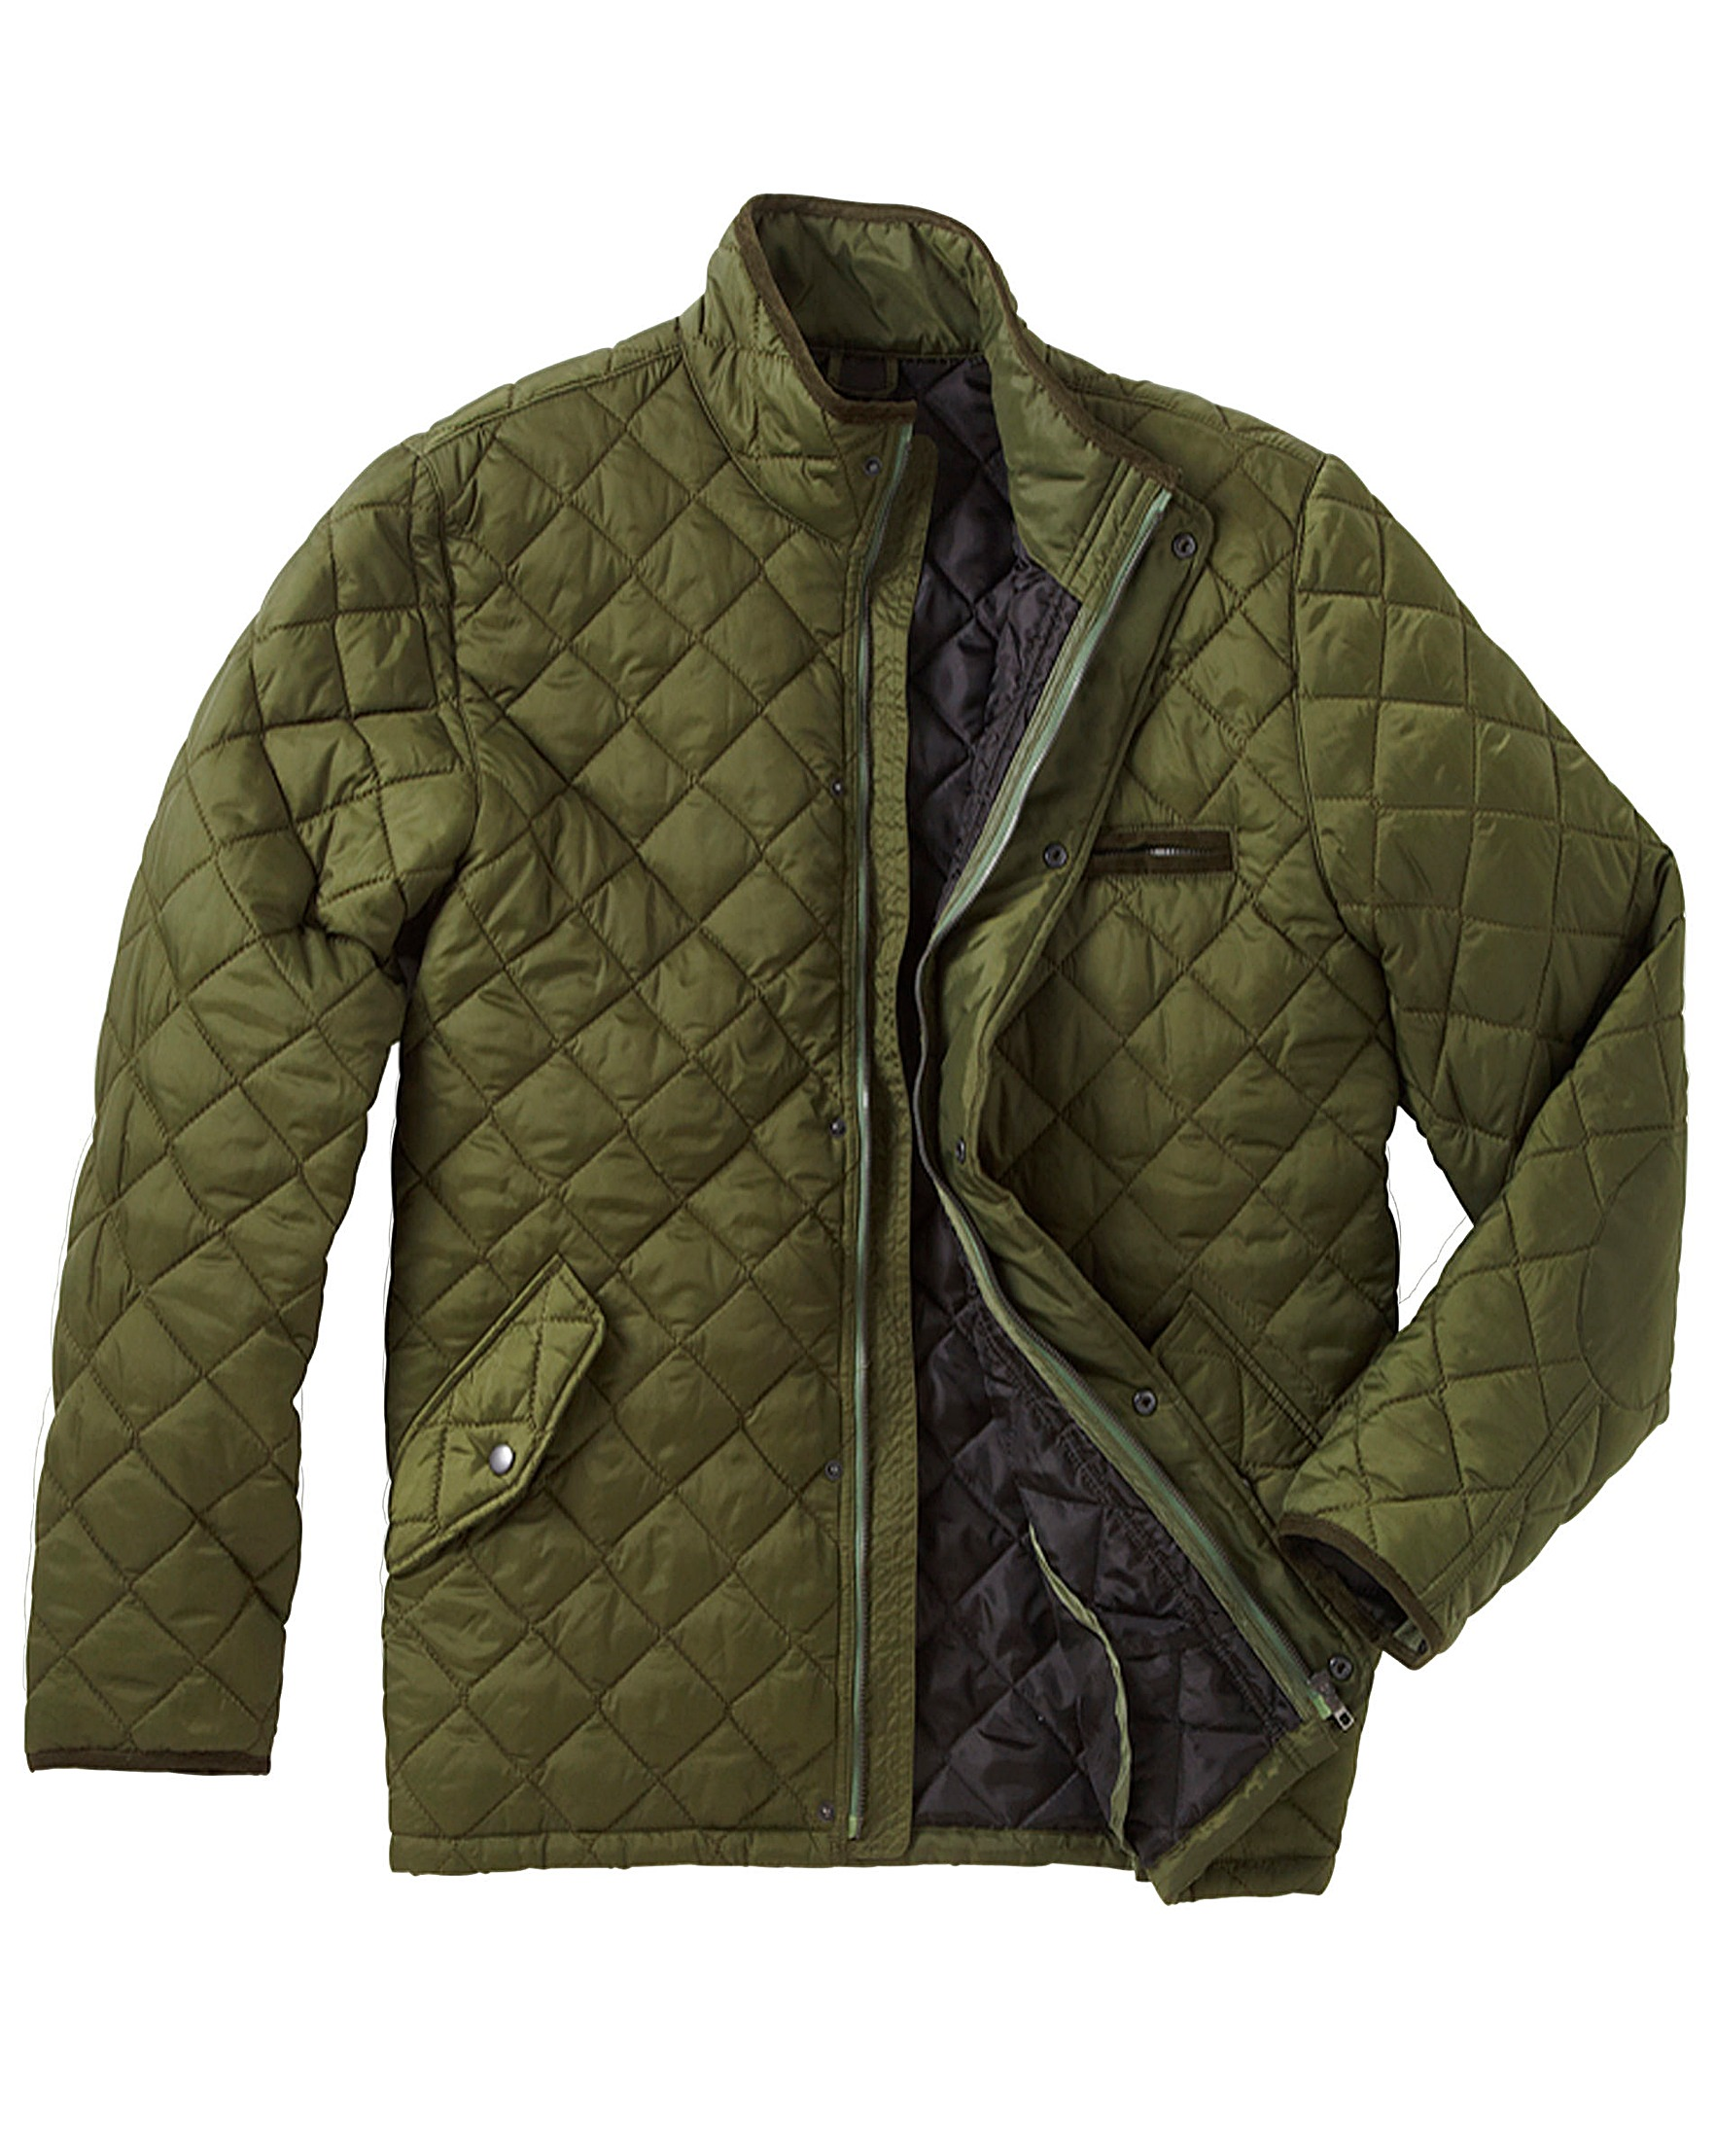 quilted jacket s mobility extralarge sale athletic quilt large rocky women womens